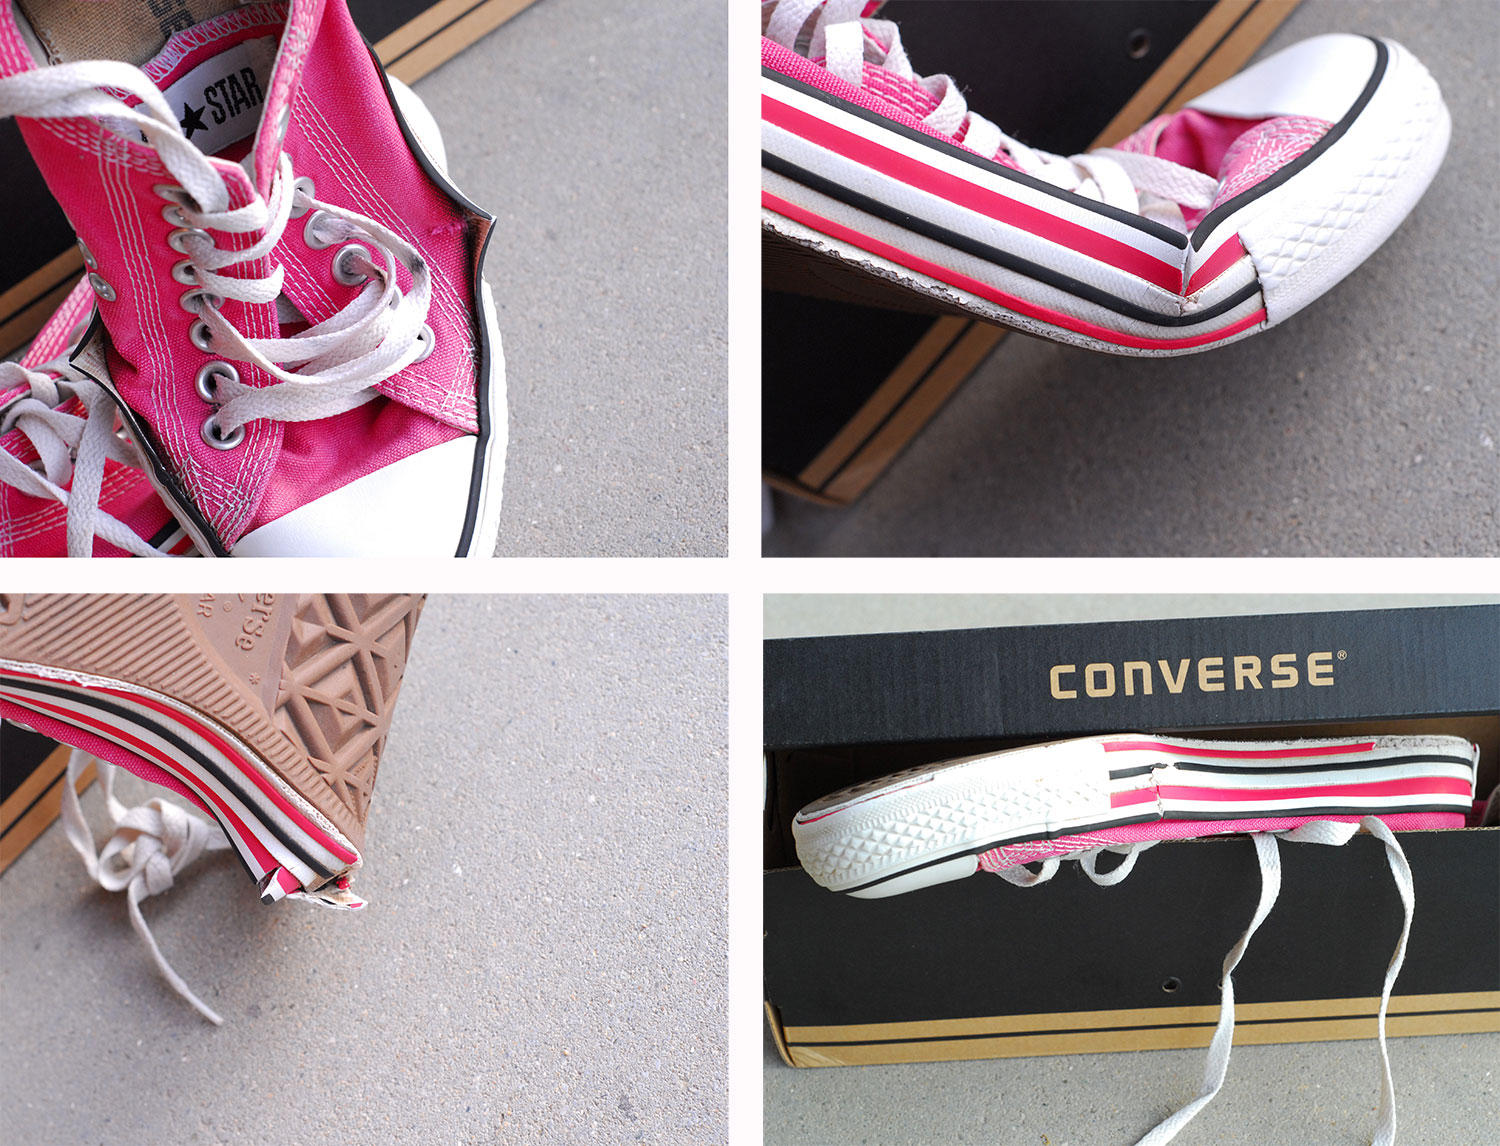 Converse sneakers worn out prematurely